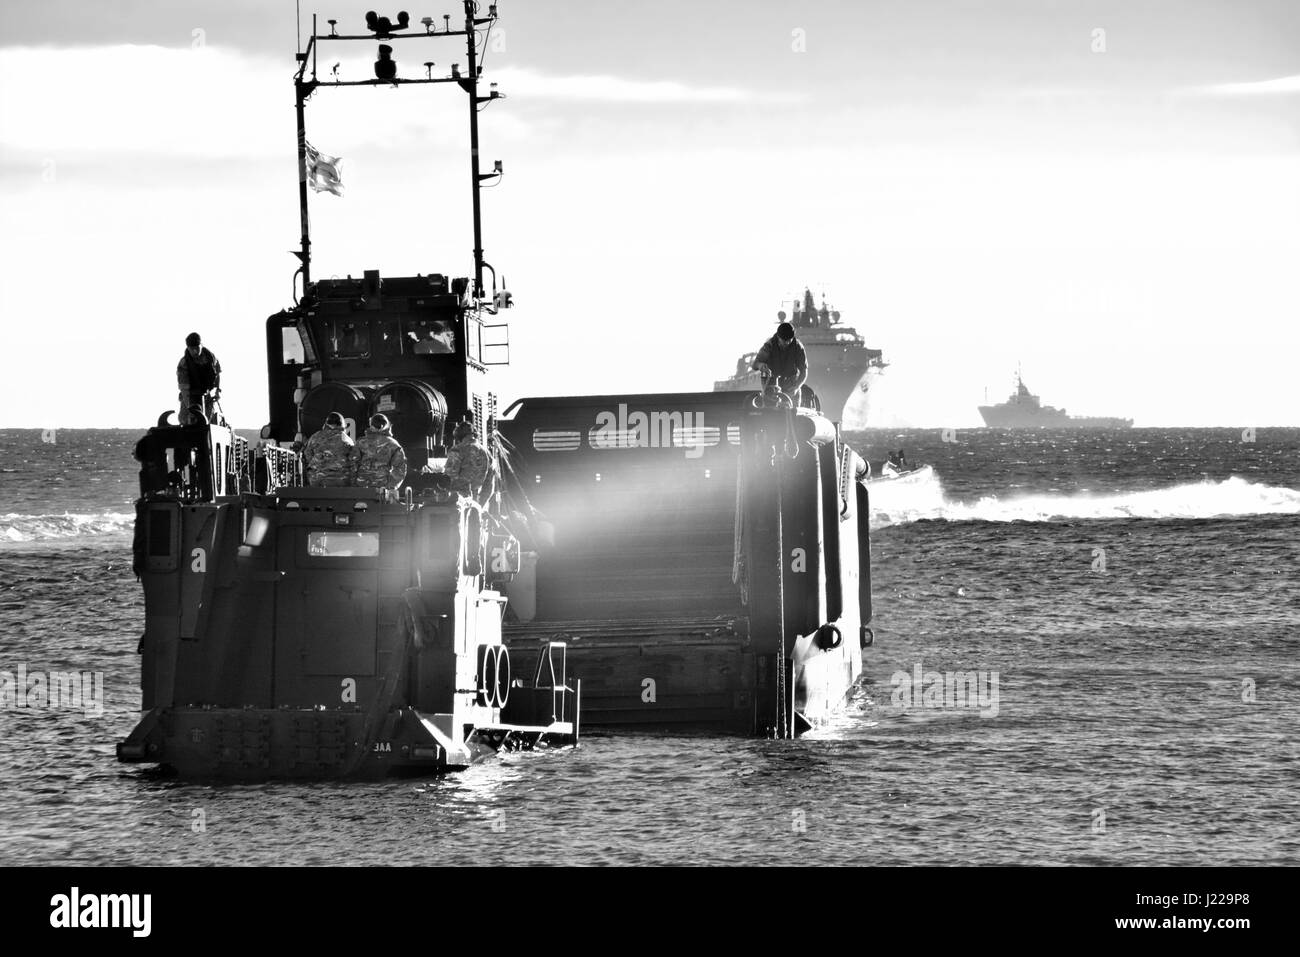 Royal Marines amphibious landings at Eastern Beach in Gibraltar. Photographer Stephen Ignacio at Eastern Beach, - Stock Image